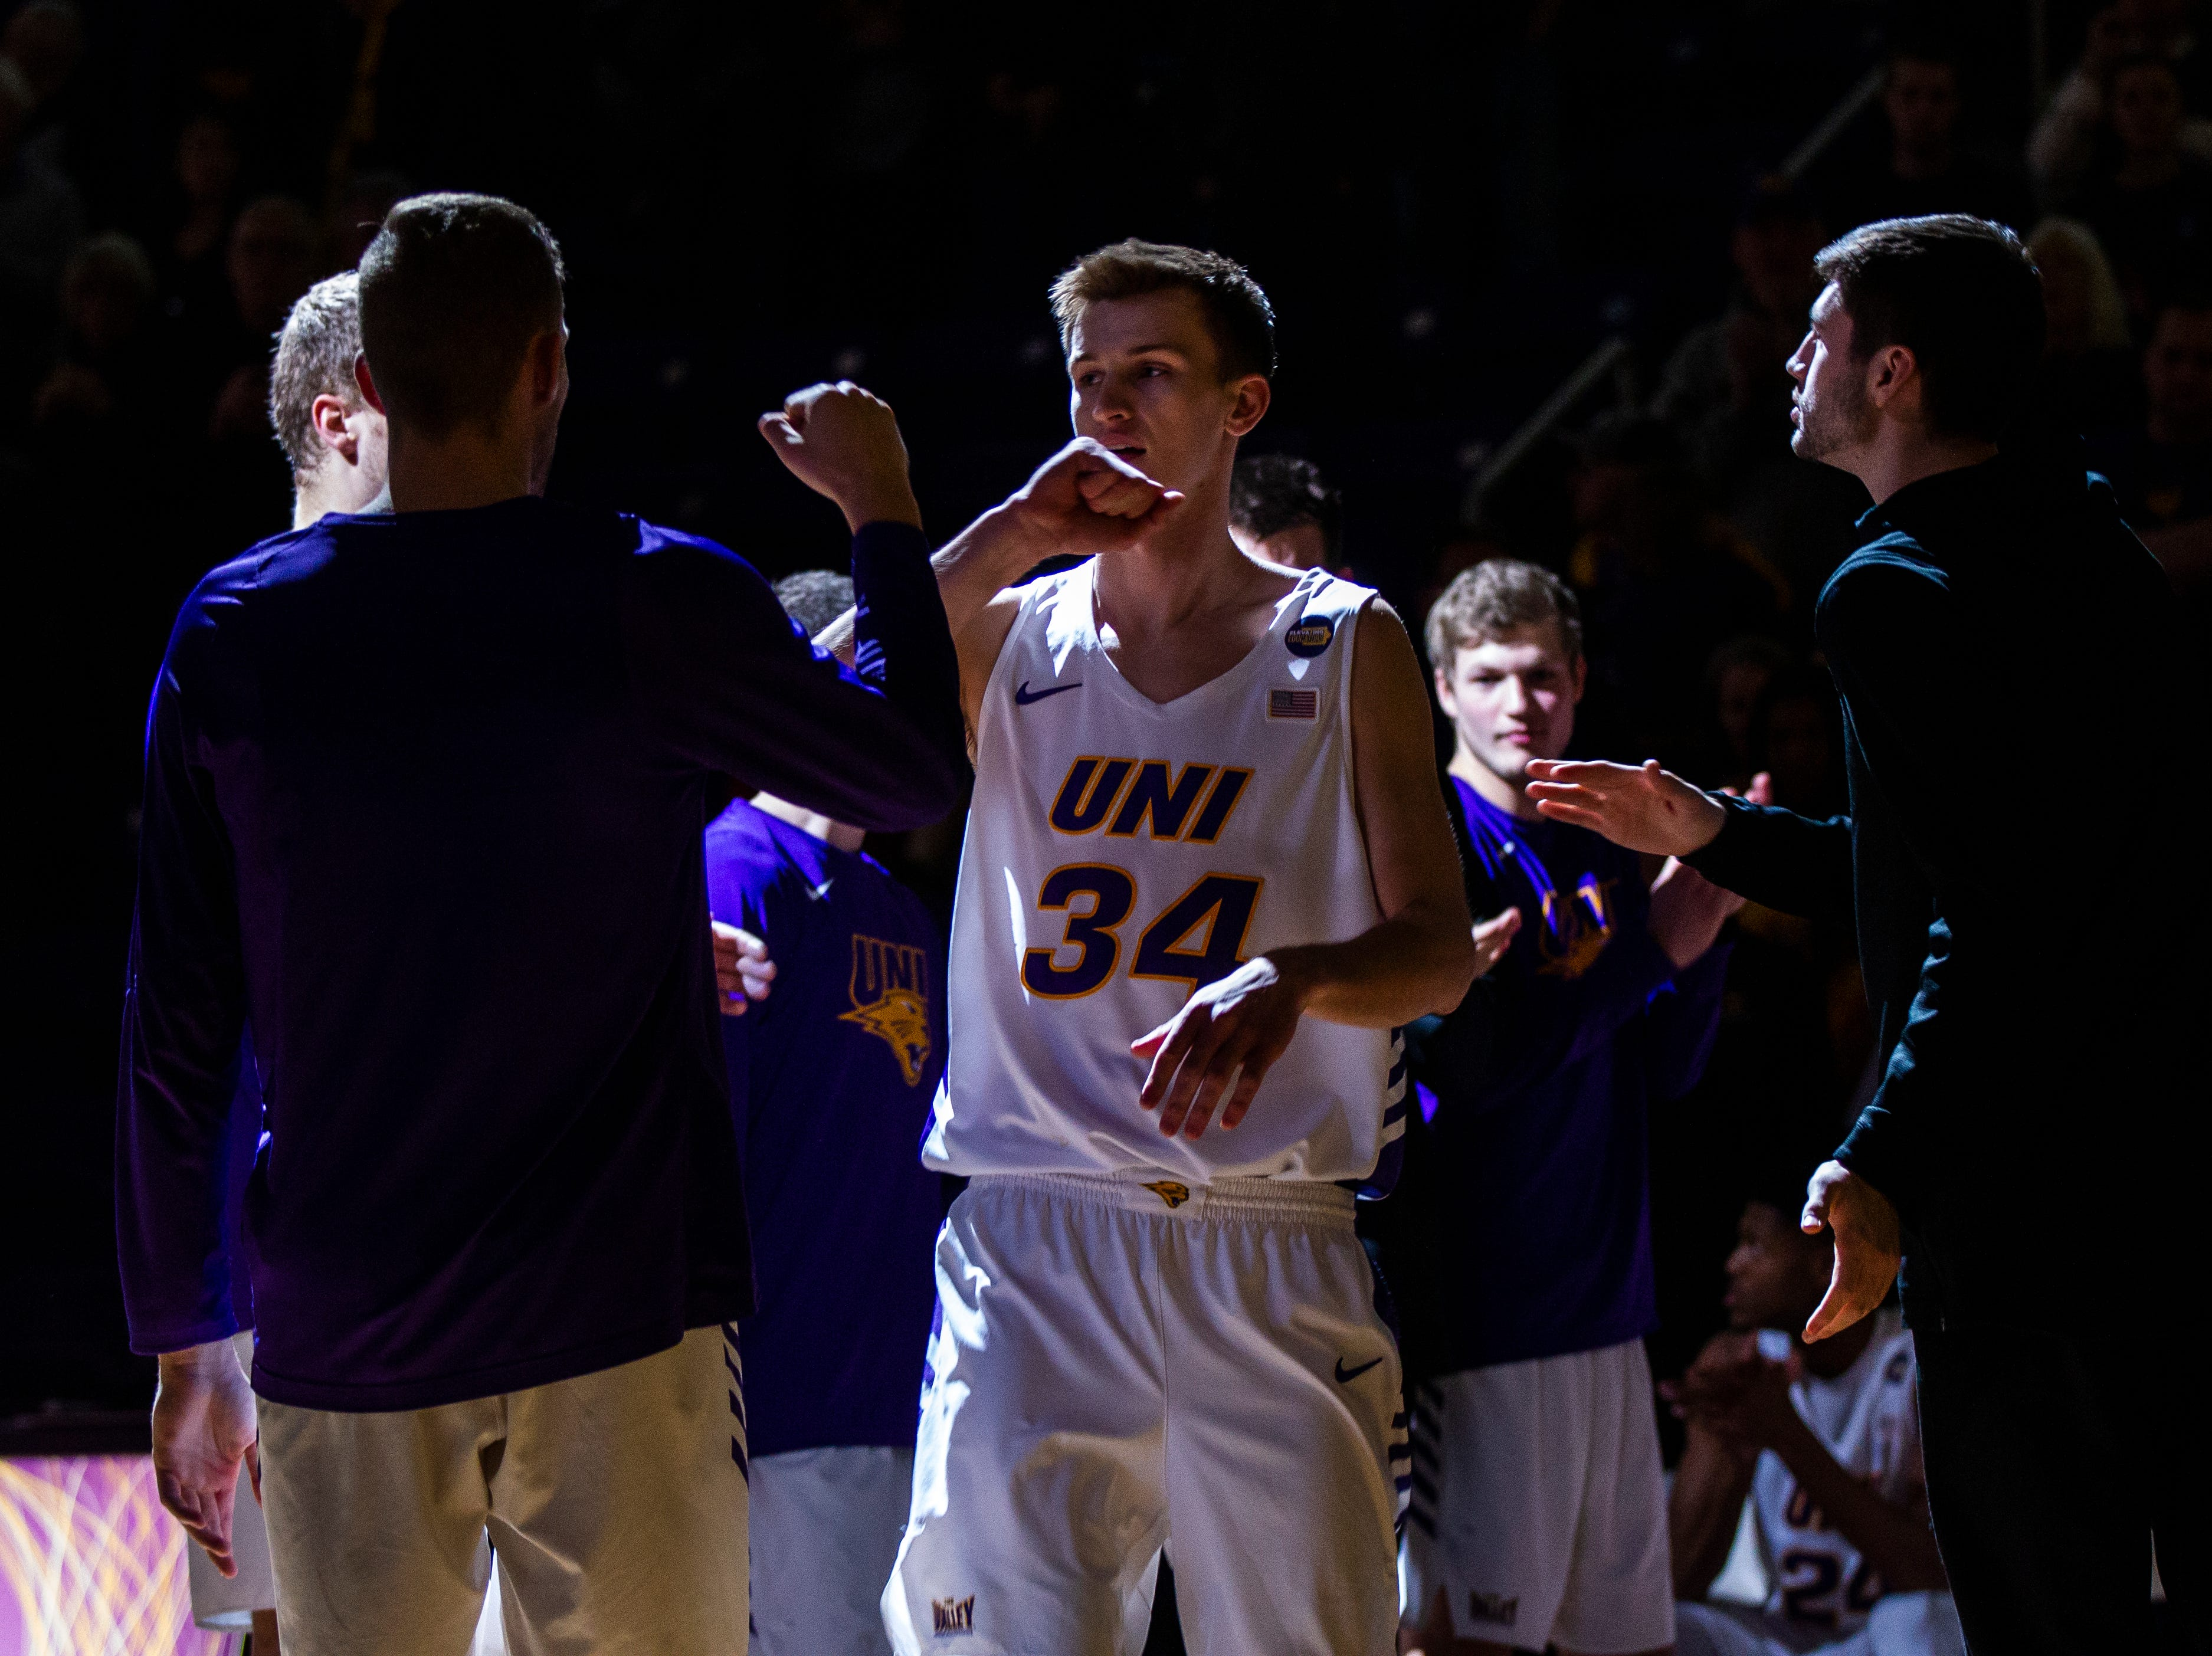 Northern Iowa forward Luke McDonnell (34) gets introduced during a NCAA Missouri Valley Conference men's basketball game on Saturday, Jan. 5, 2019, at the McLeod Center in Cedar Falls, Iowa.